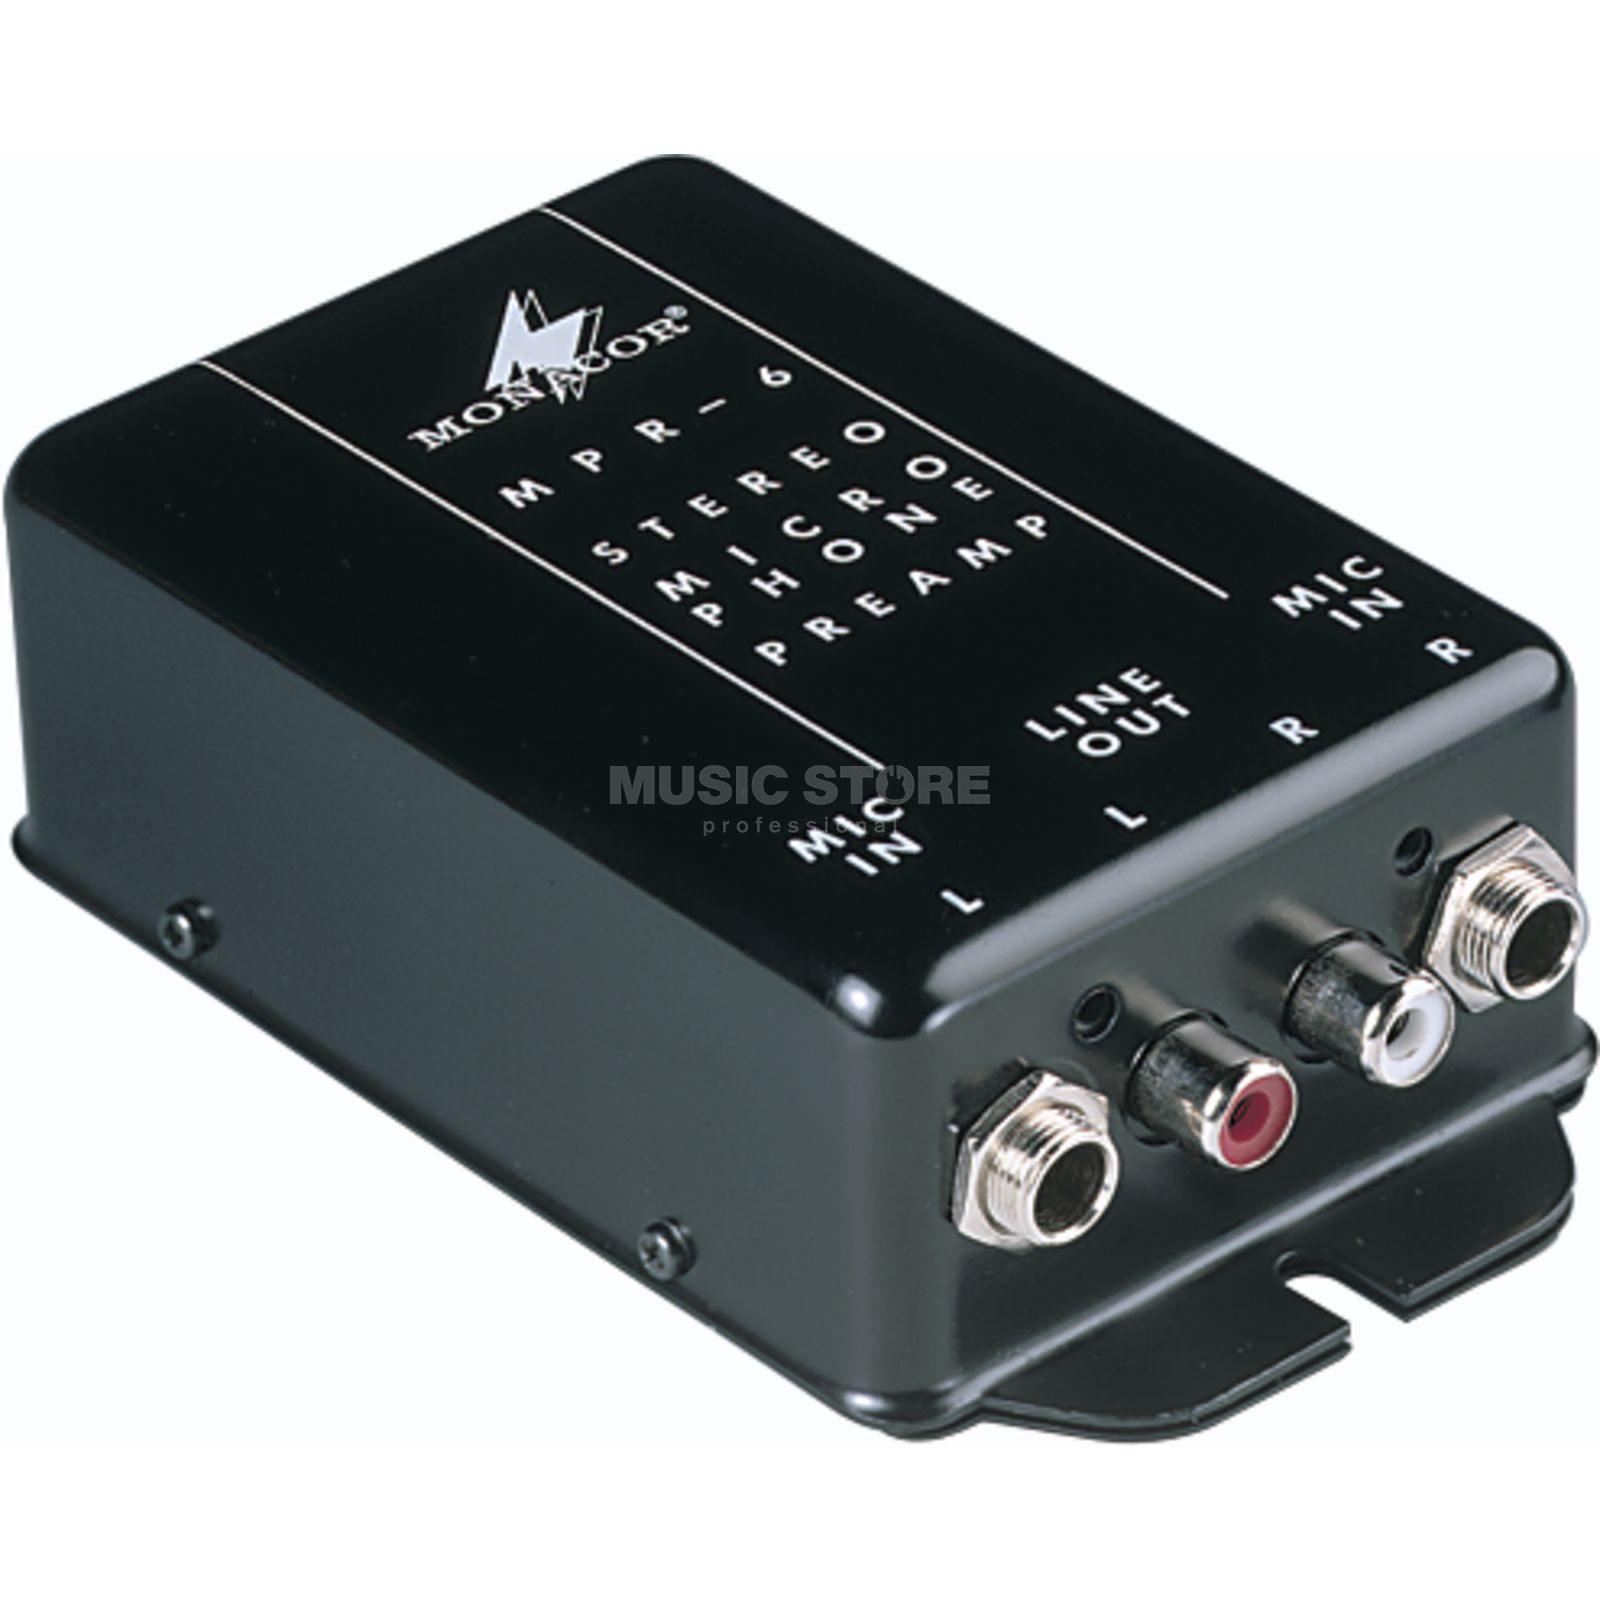 IMG STAGELINE MPR-6/ Mic- Amplifier, f.Connect.of 2 Mics to a Line Product Image